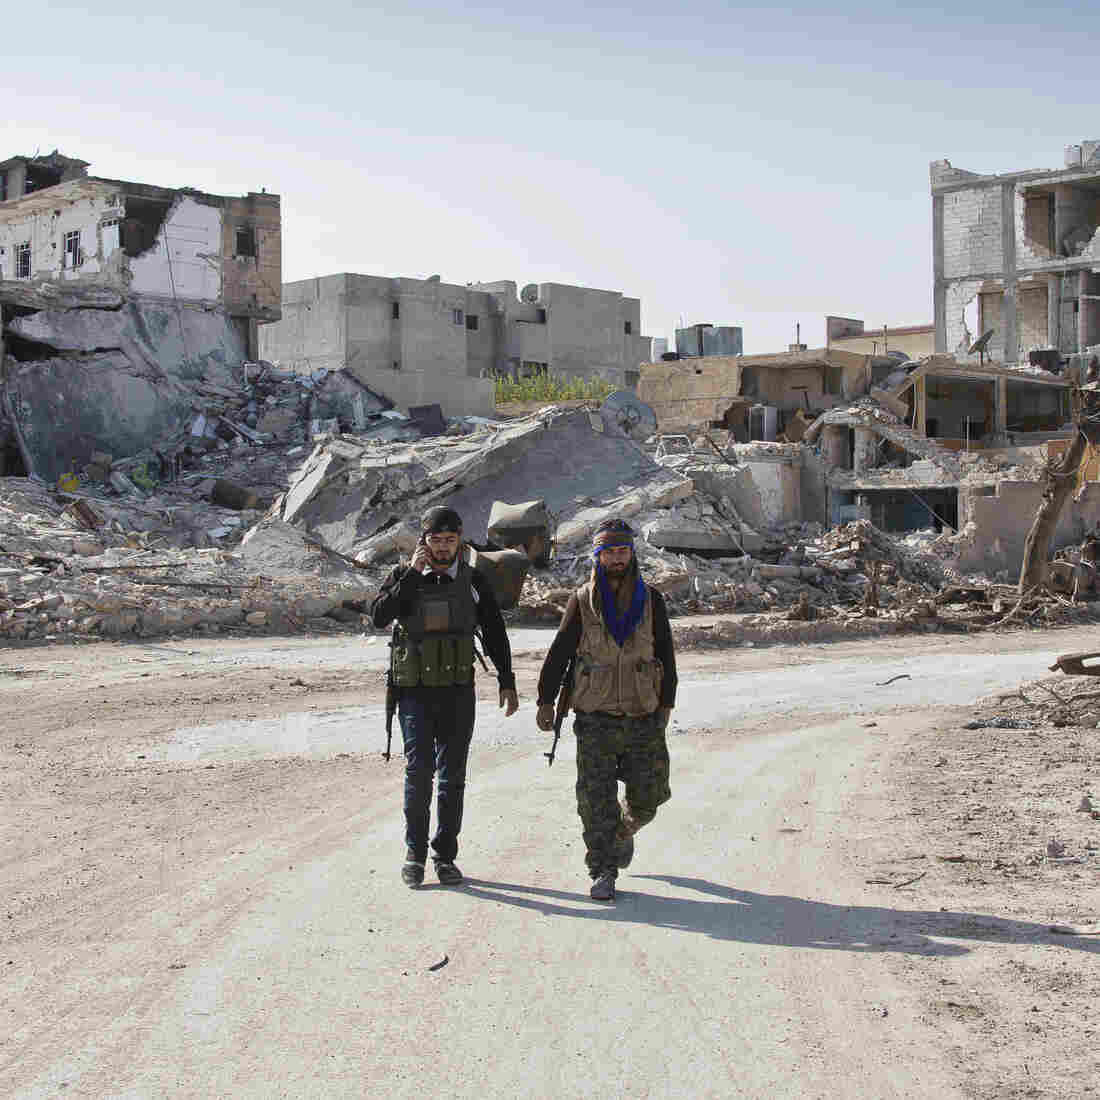 After A Year Of Bombing ISIS, U.S. Campaign Shows Just Limited Gains